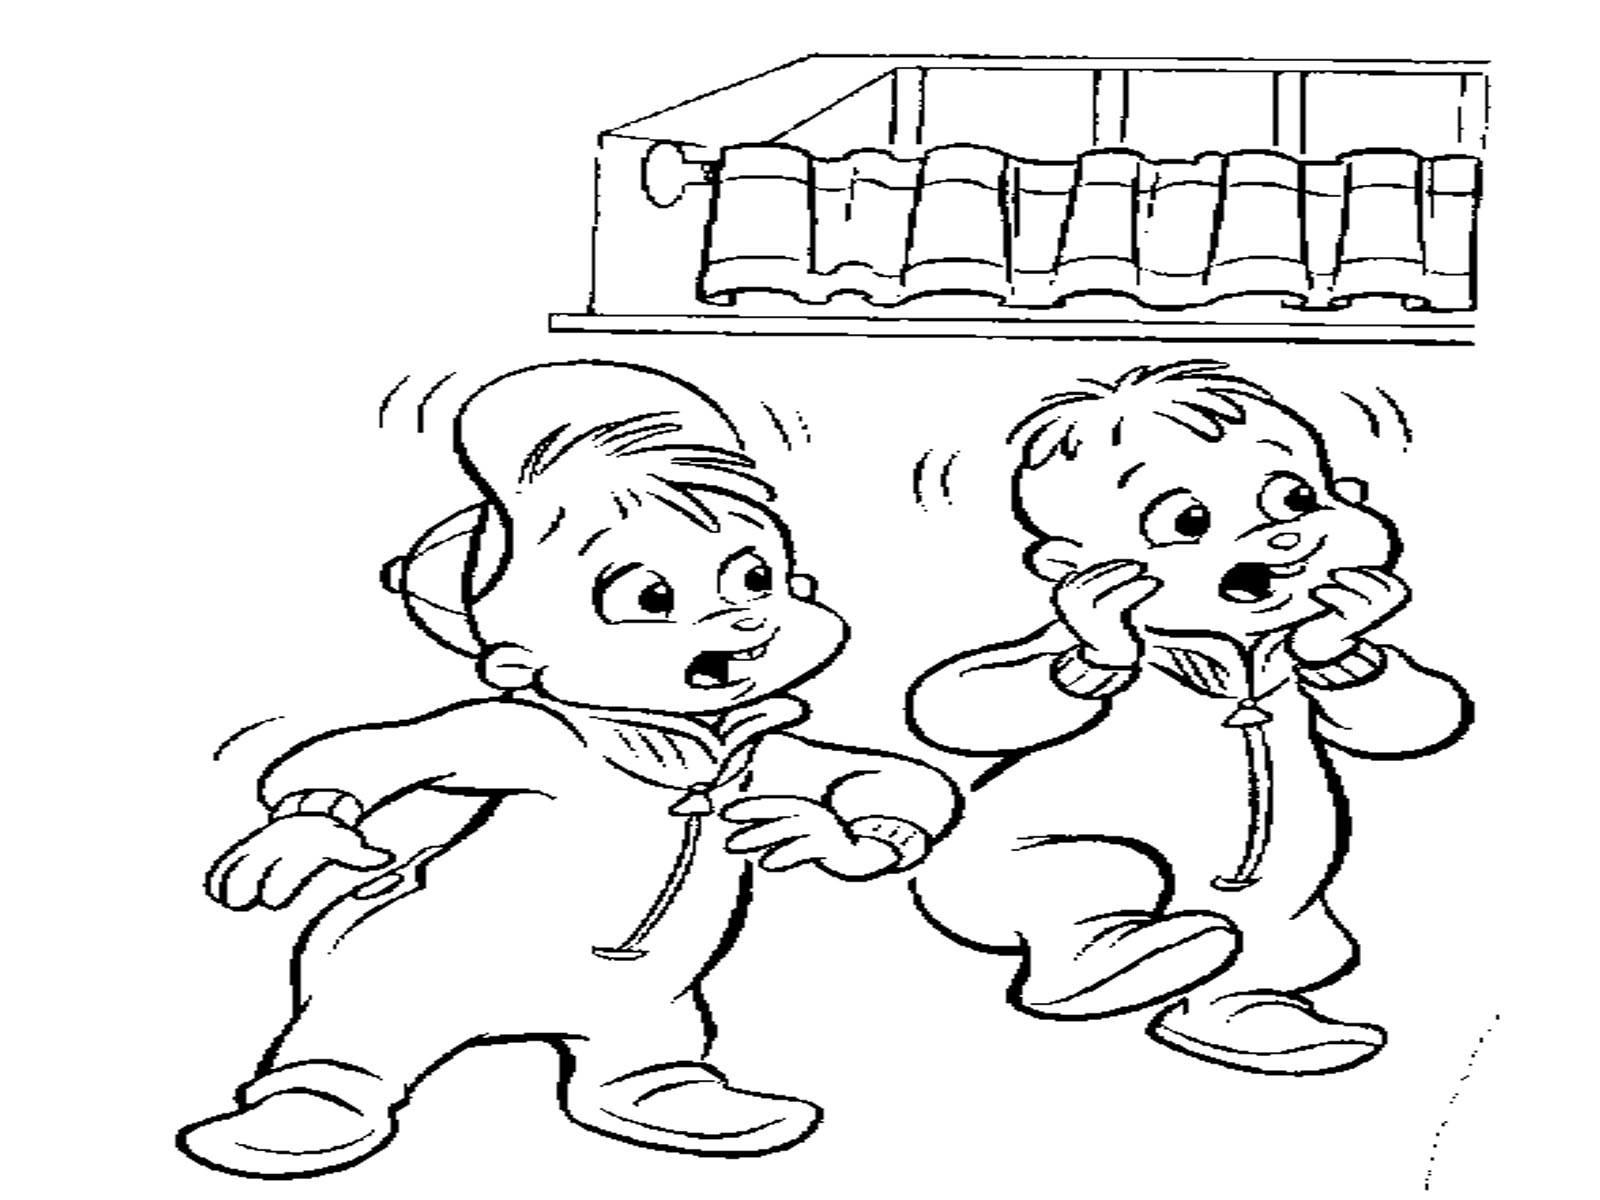 alvin and theodore chi - Theodore Chipmunk Coloring Pages